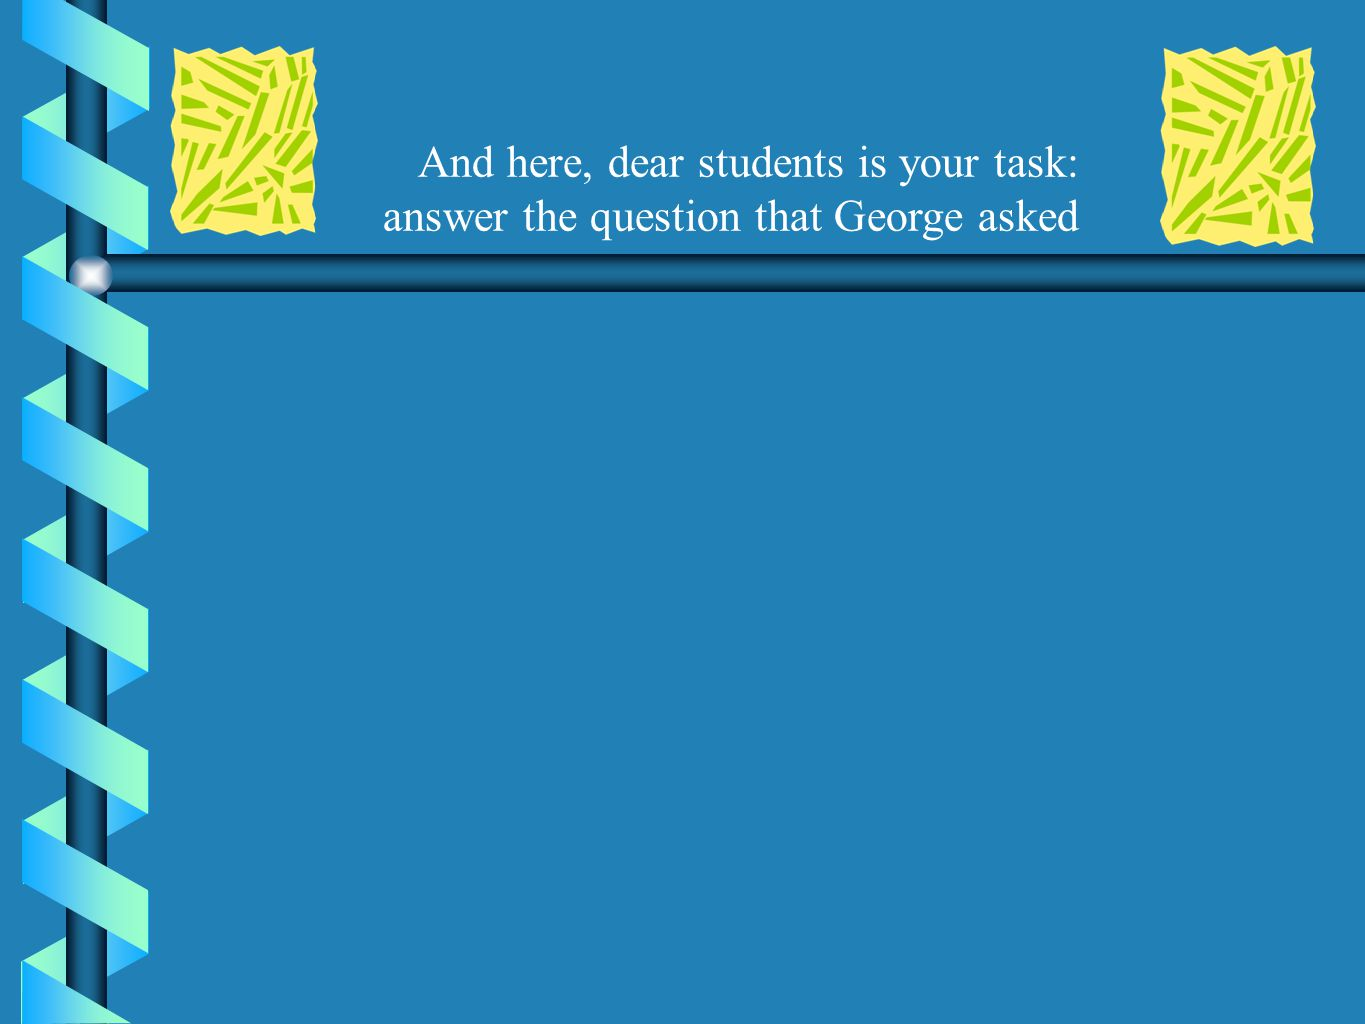 And here, dear students is your task: answer the question that George asked